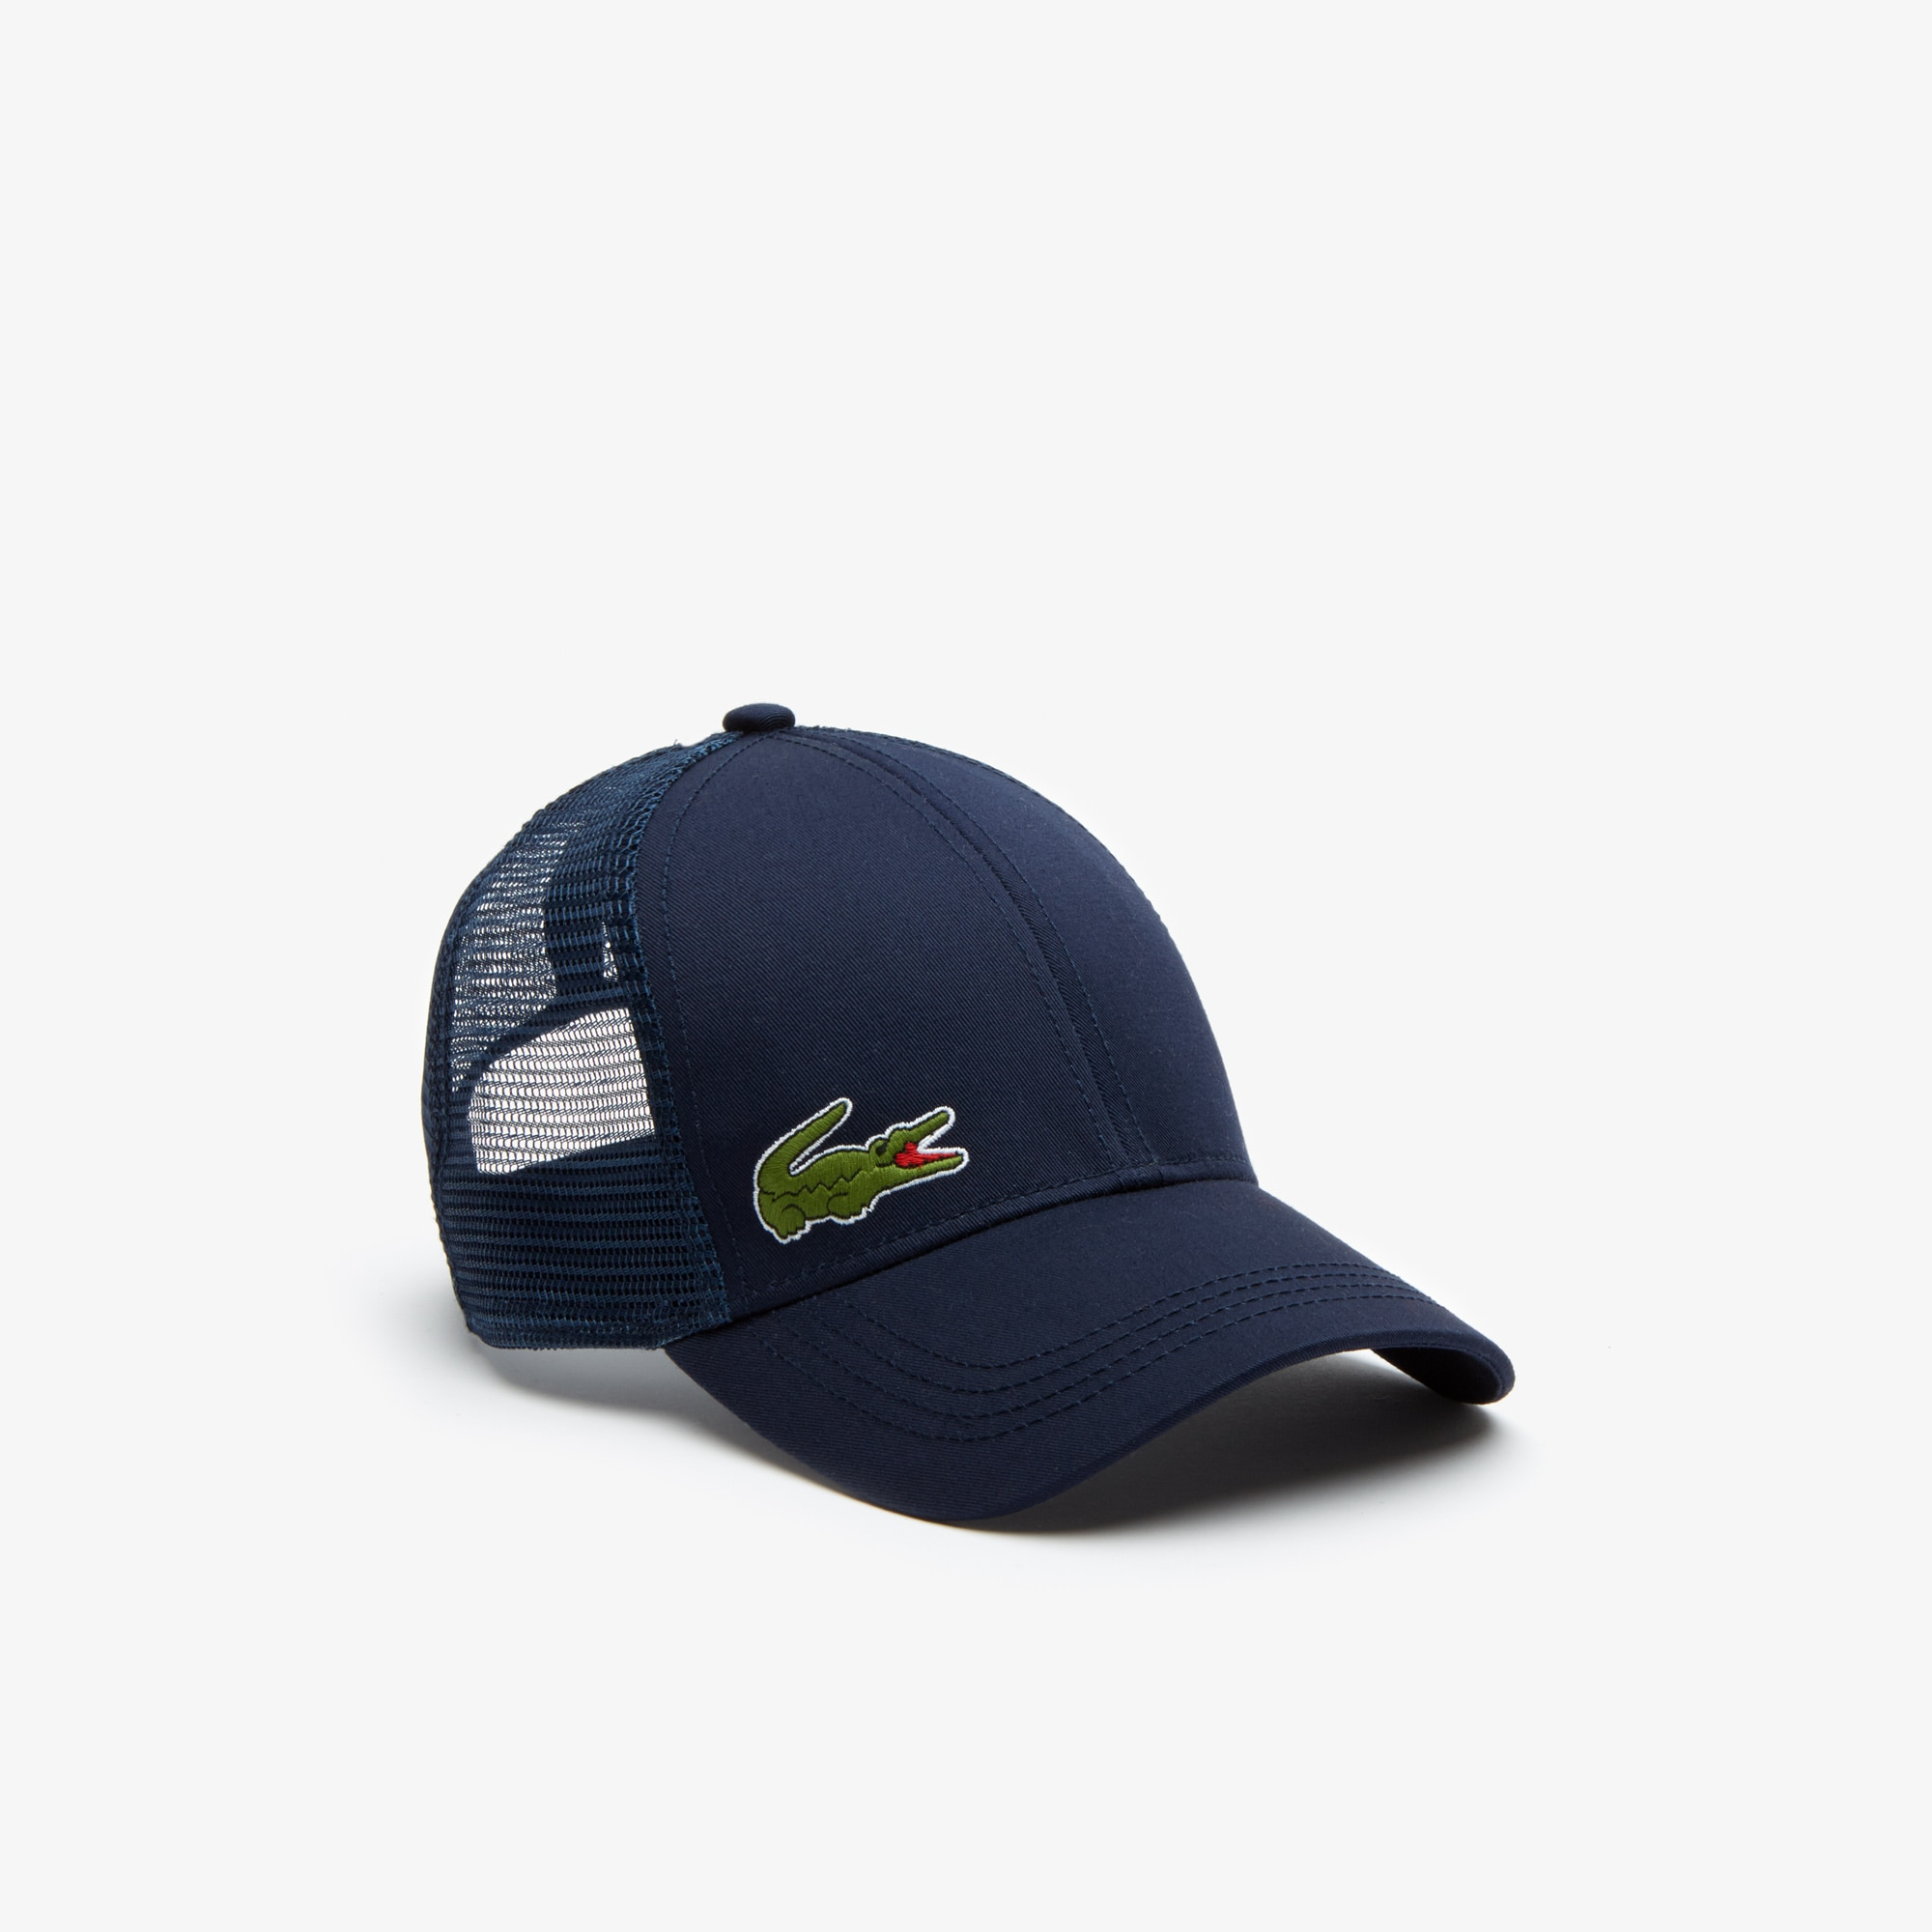 라코스테 Lacoste Mens SPORT Gabardine And Mesh Tennis Cap,navy blue